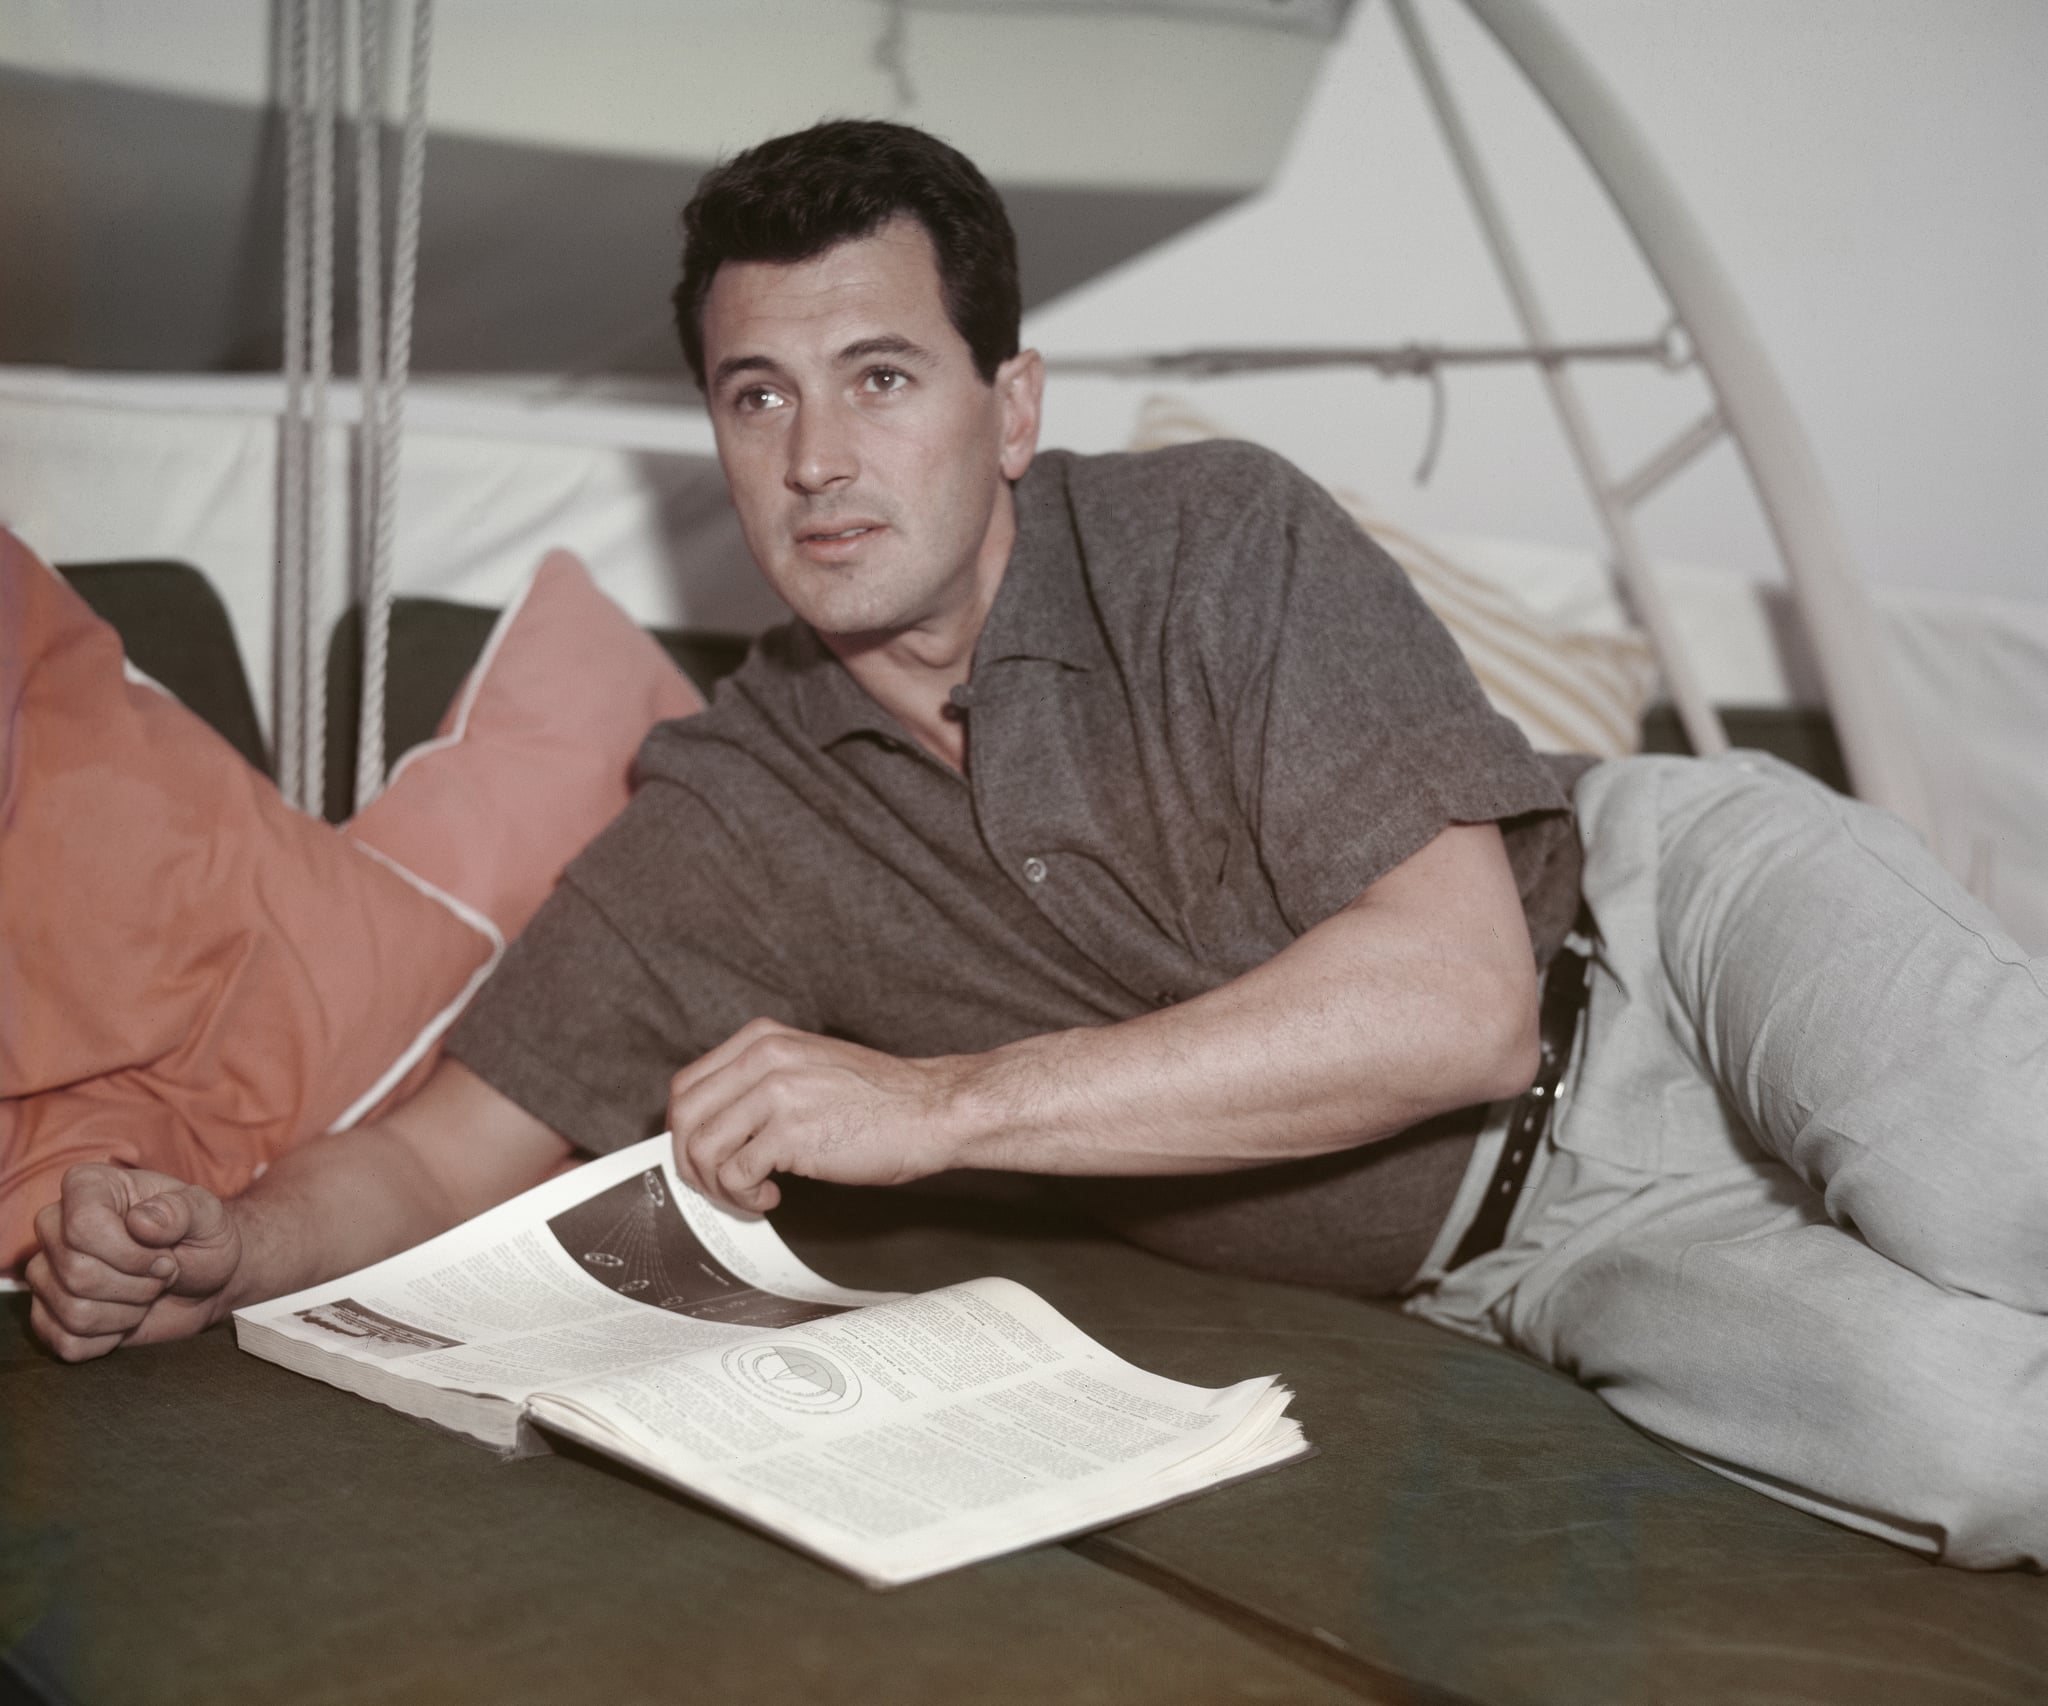 American actor Rock Hudson (1925 - 1985) reading a book, circa 1955.  (Photo by Archive Photos/Getty Images)